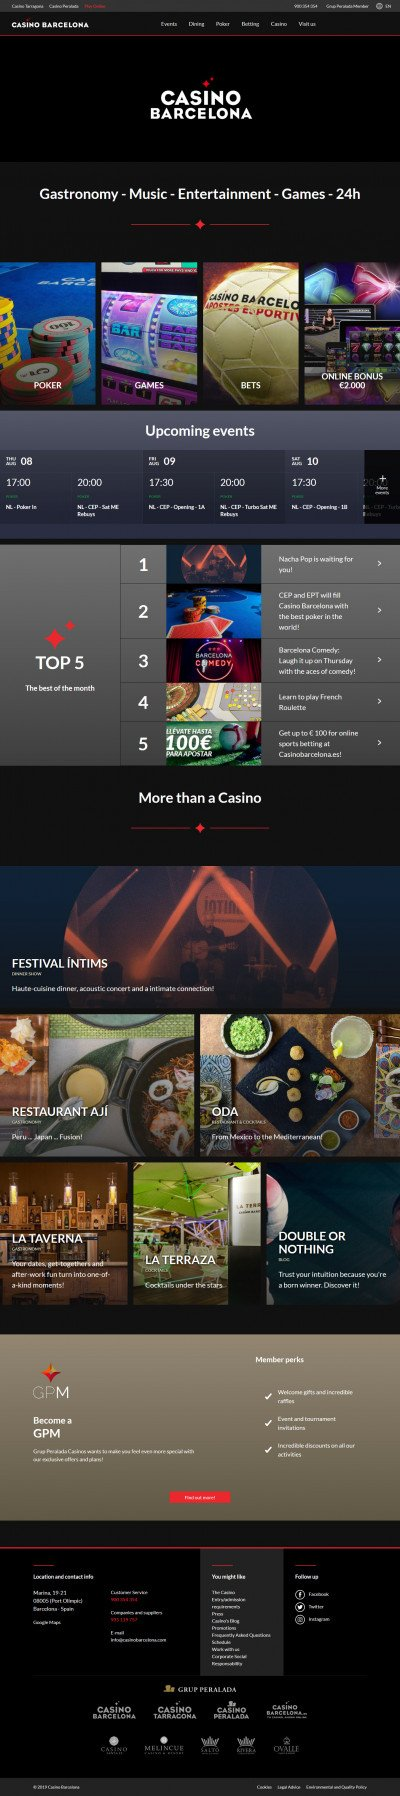 Casino Barcelona Screenshot